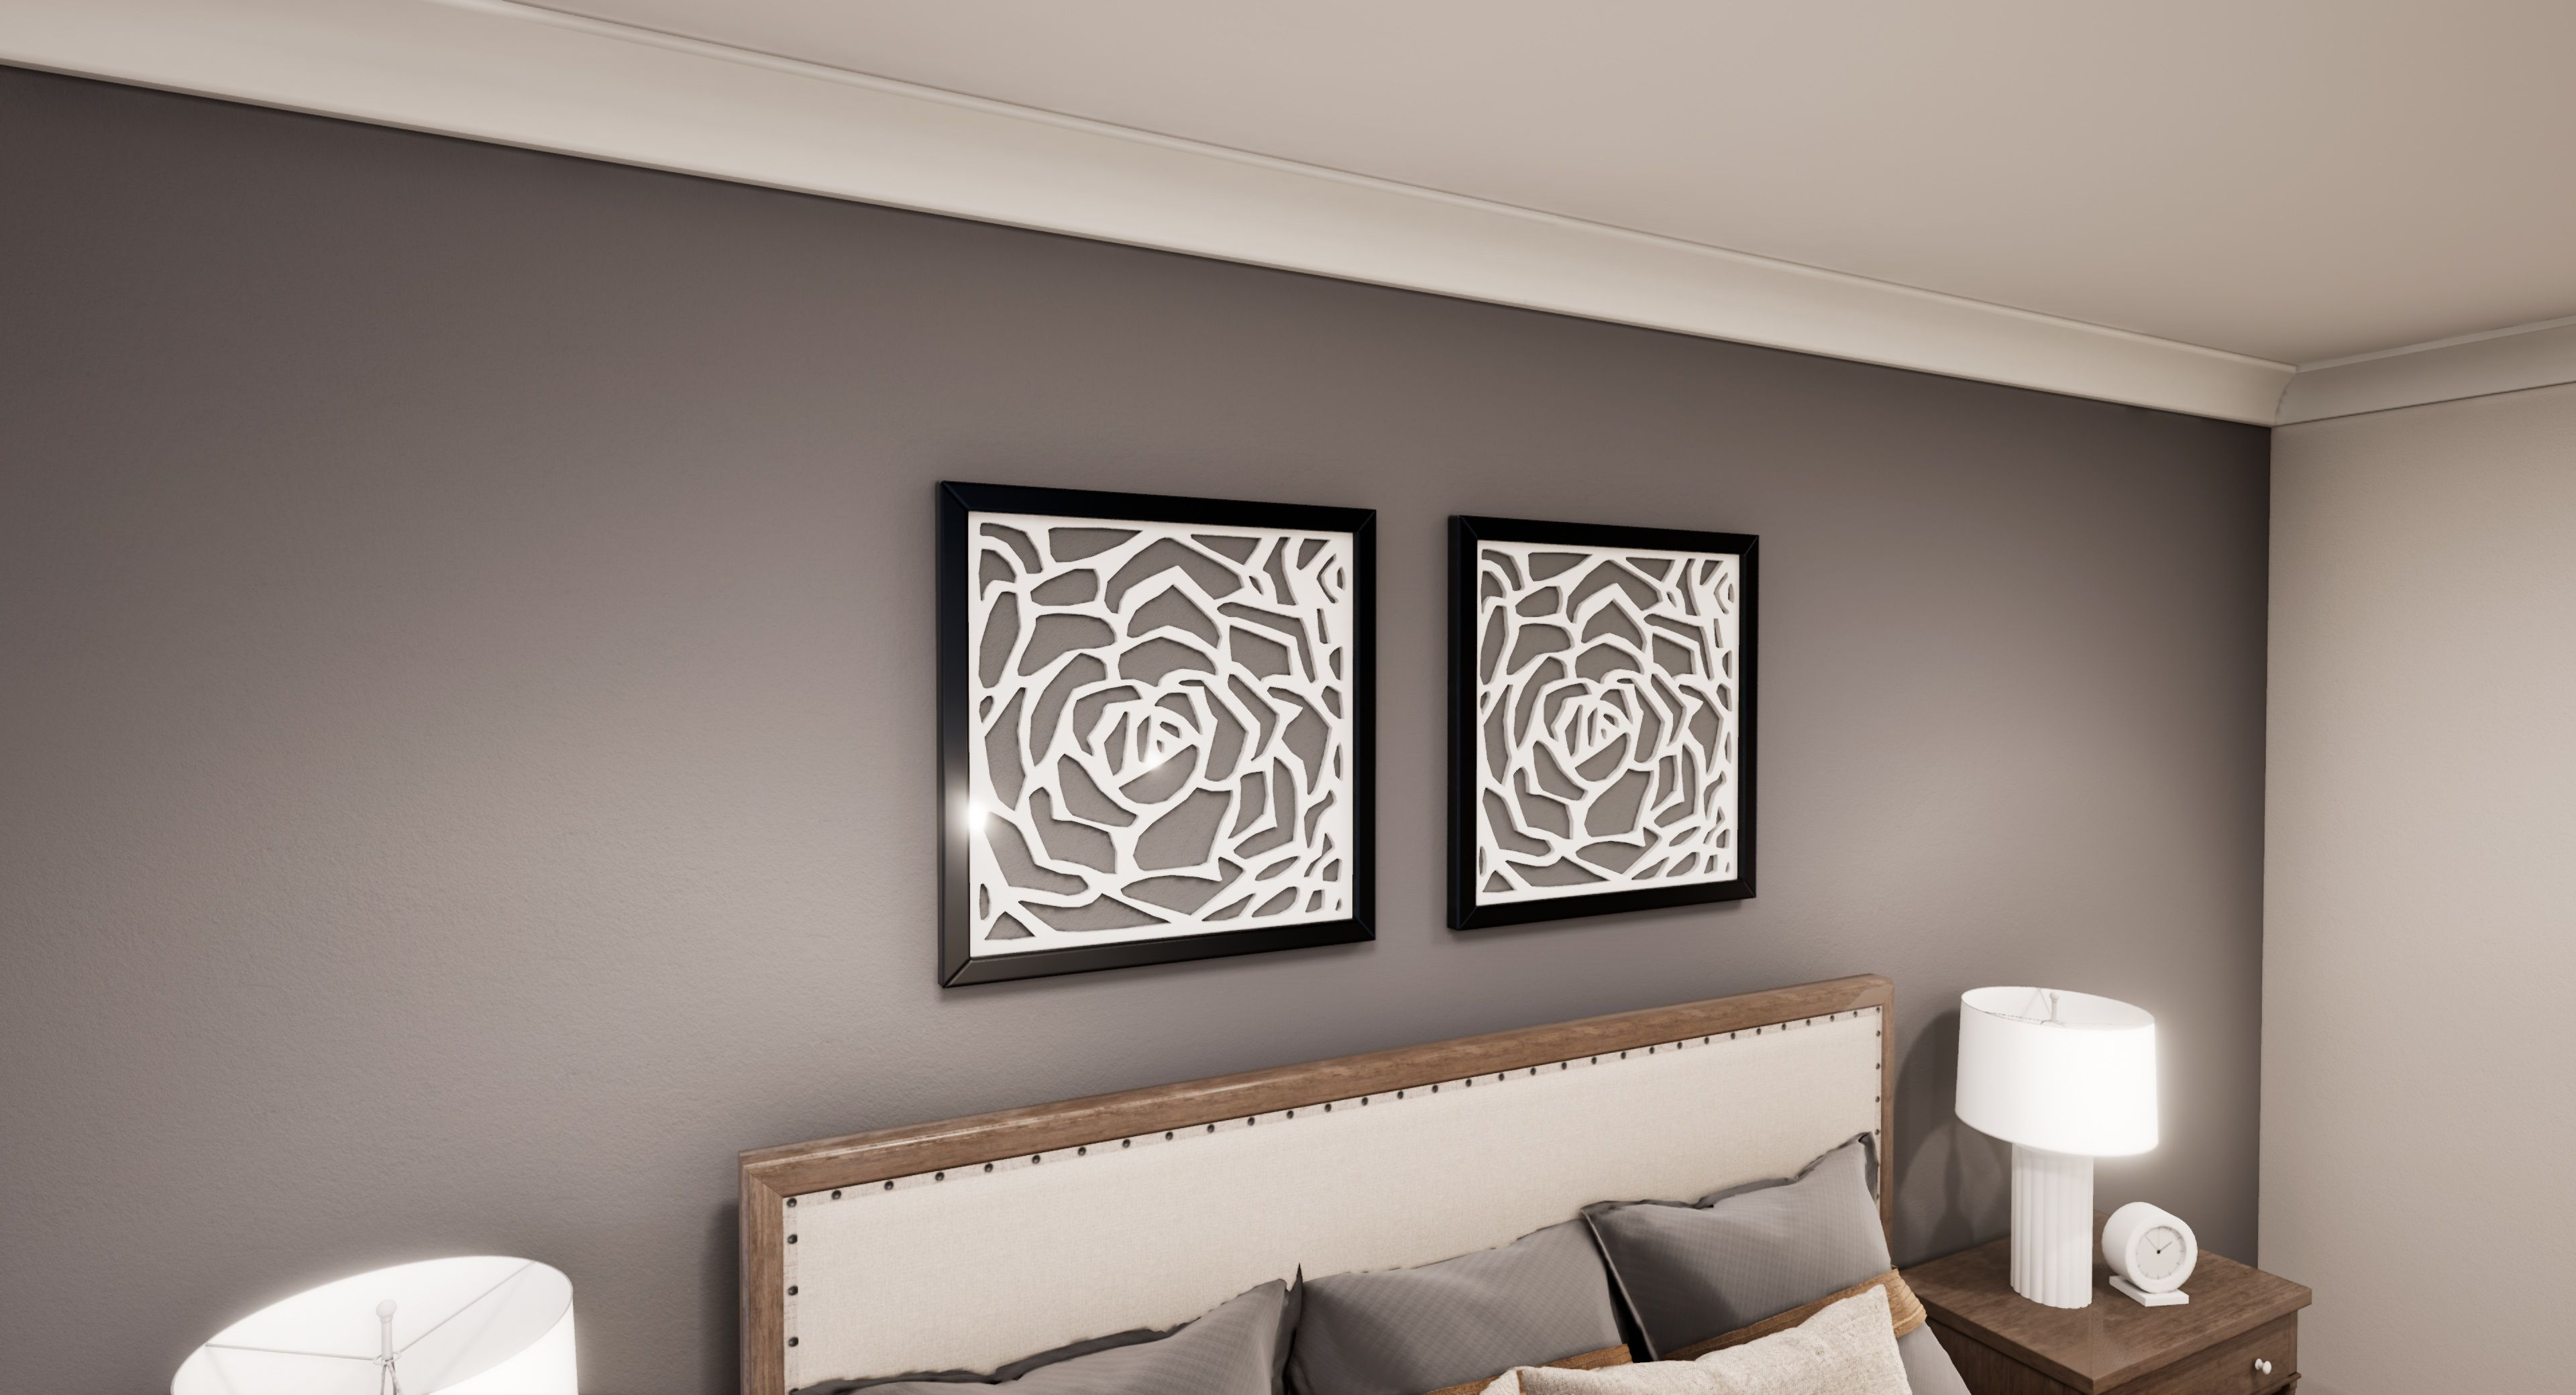 It Looks Best When Hanged On The Back Side Wall Of Your Bed This Luxury White Rose Frame Are The Modern W With Images Home Wall Decor Kitchen Wall Decor Home